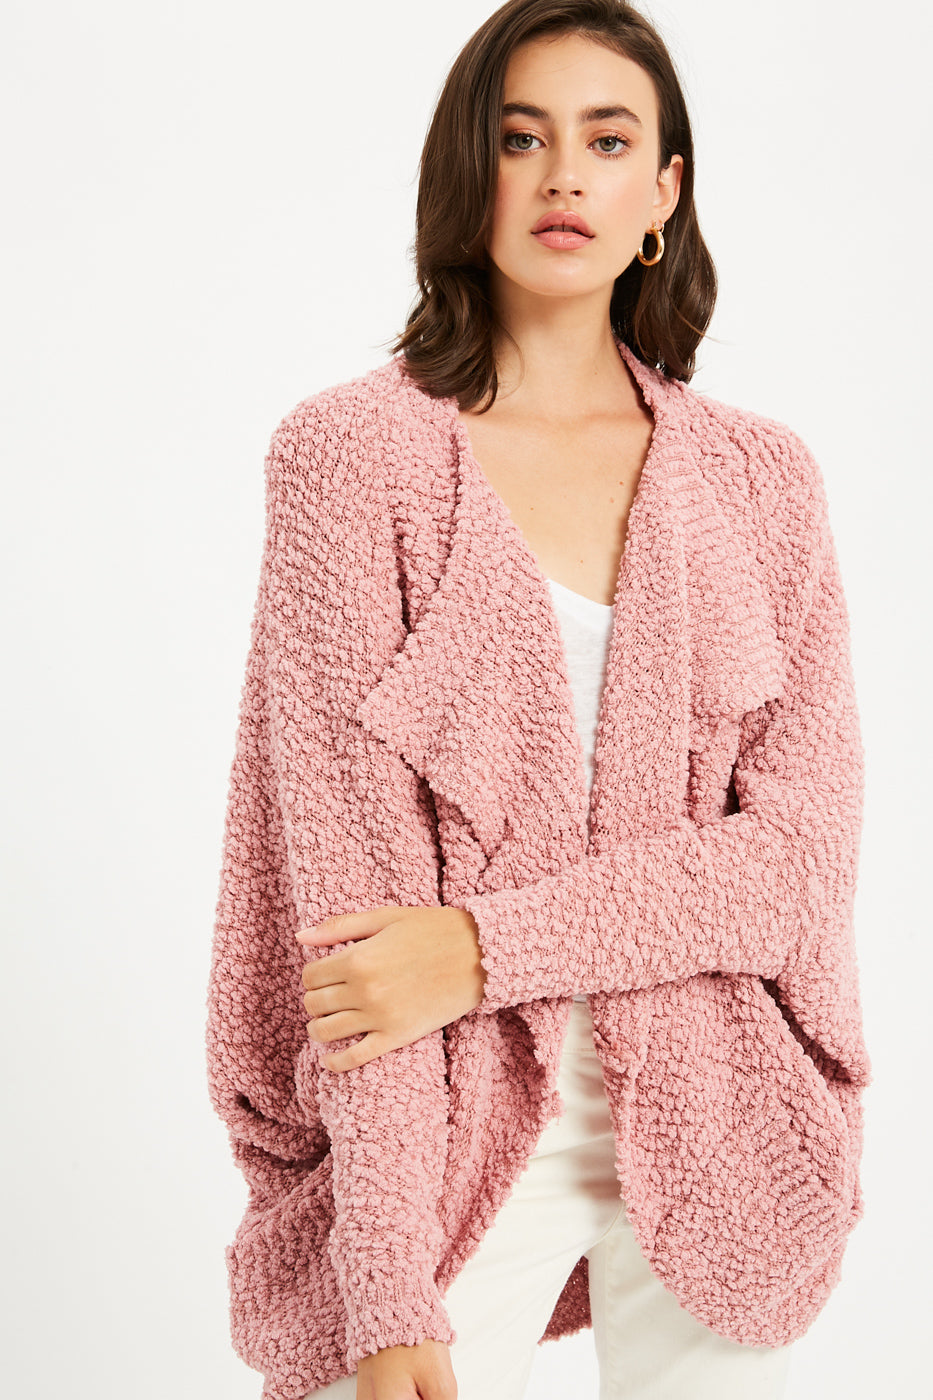 Boucle Comfy Cocoon Cardigan - Dusty Pink